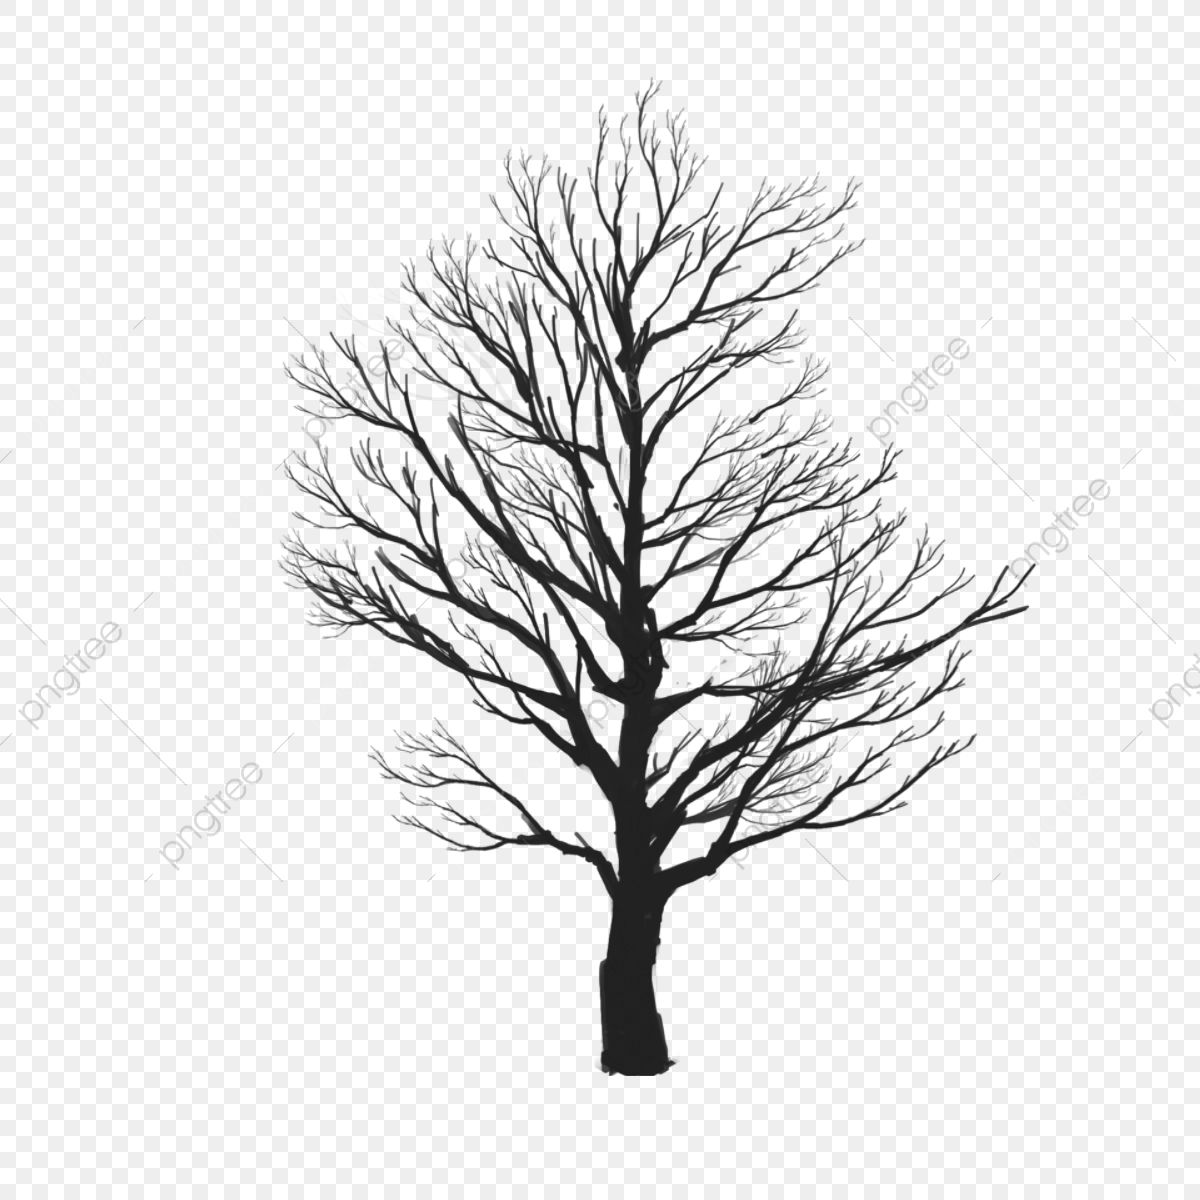 Tree Vector Clipart Tree Icons Tree Clipart Tree Cartoon Png Transparent Clipart Image And Psd File For Free Download Tree Clipart Watercolor Background Watercolor Trees